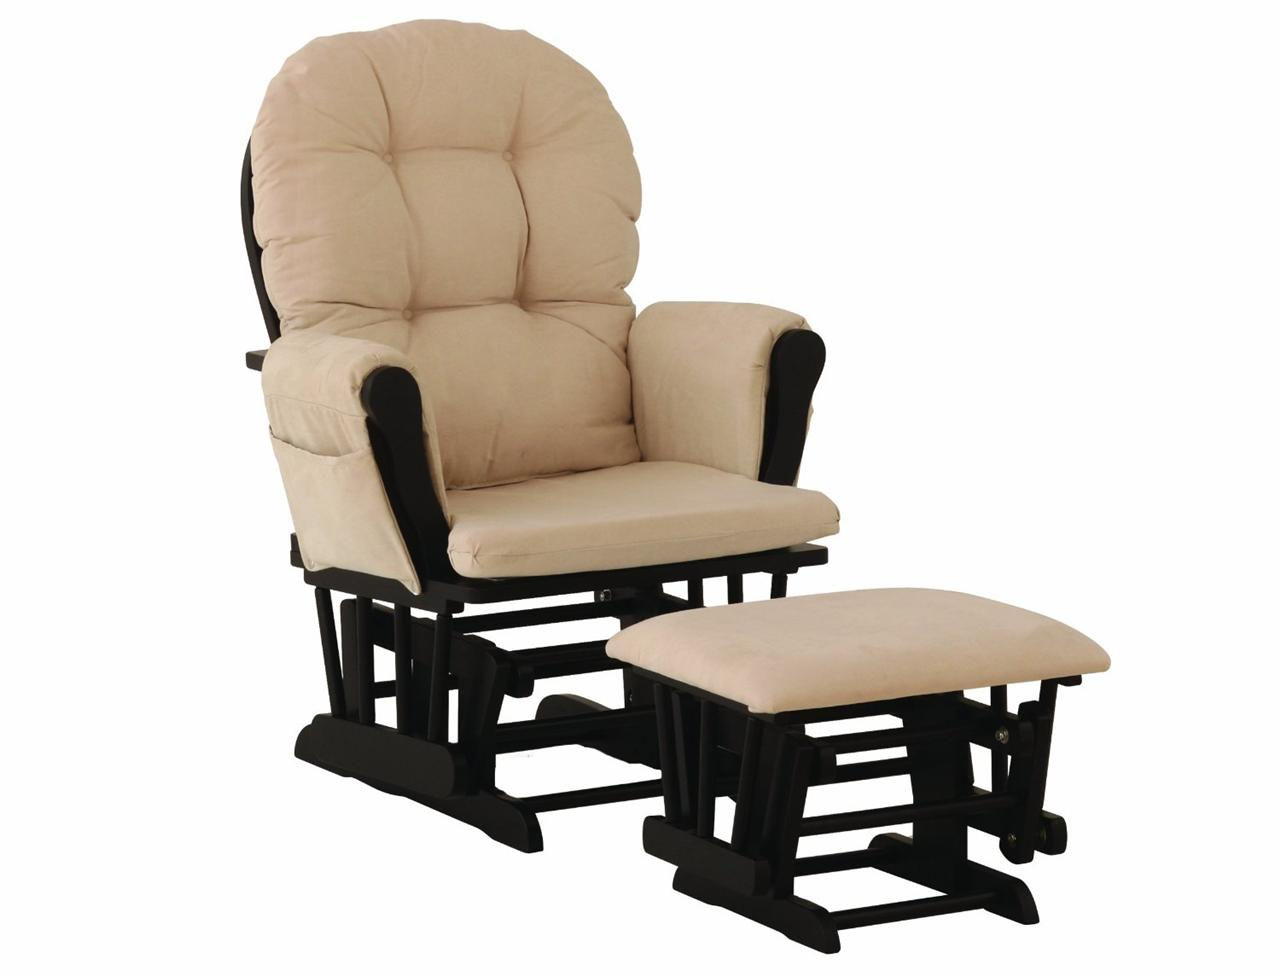 glider and ottoman set 6 colors rocker rocking chair furniture ebay